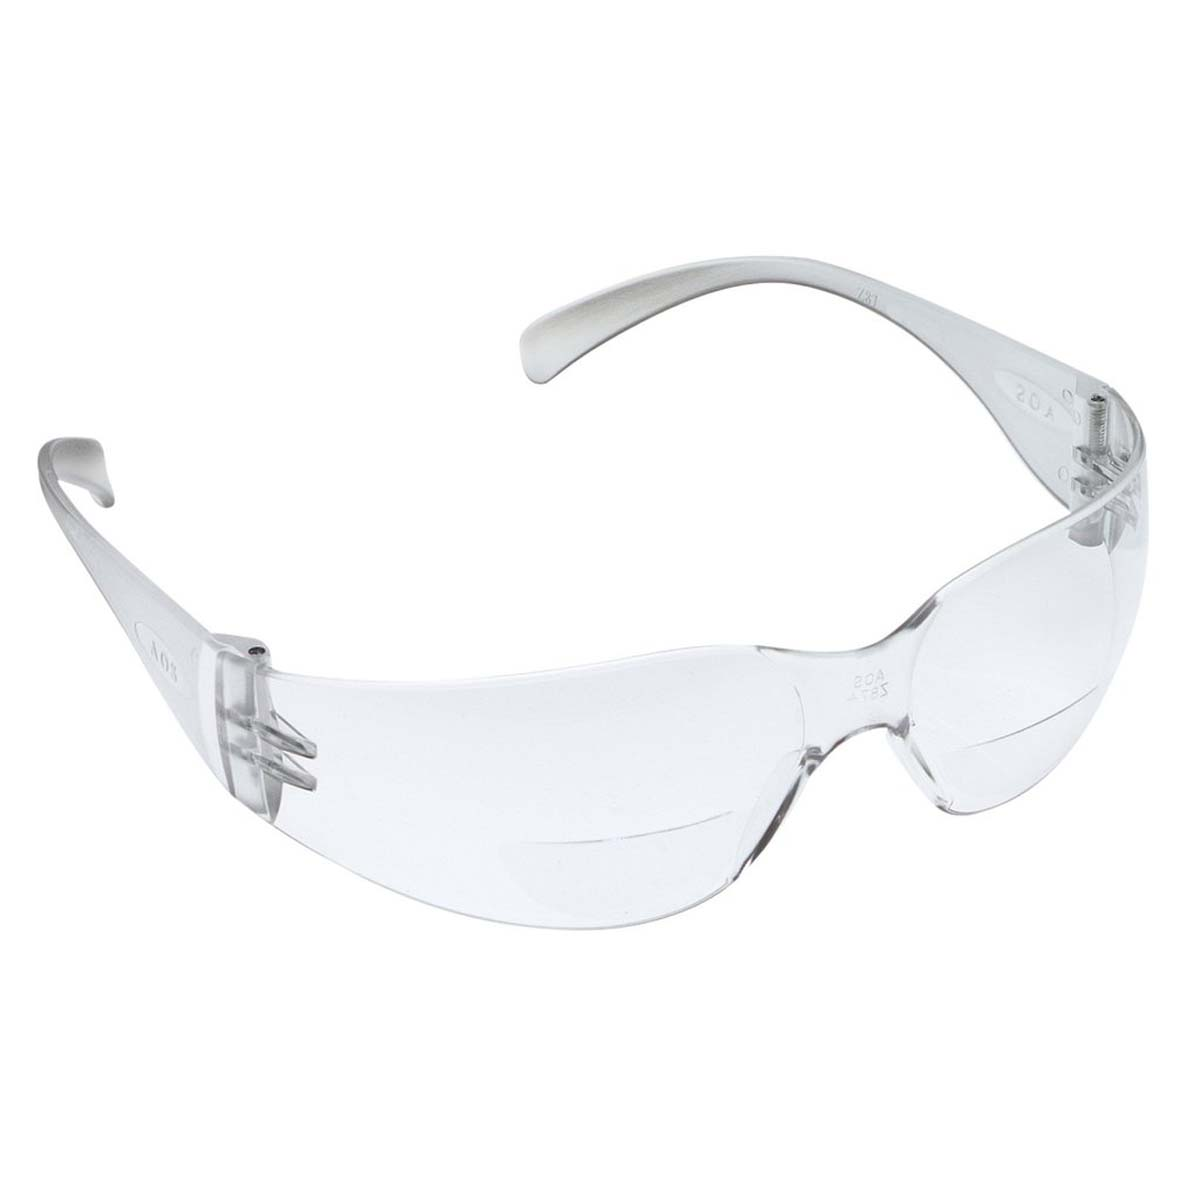 "3Mâ""¢ Virtuaâ""¢ Reader Protective Eyewear 11513-00000-20 Clear Anti-Fog Lens, Clear Temple, +1.5 Diopter"